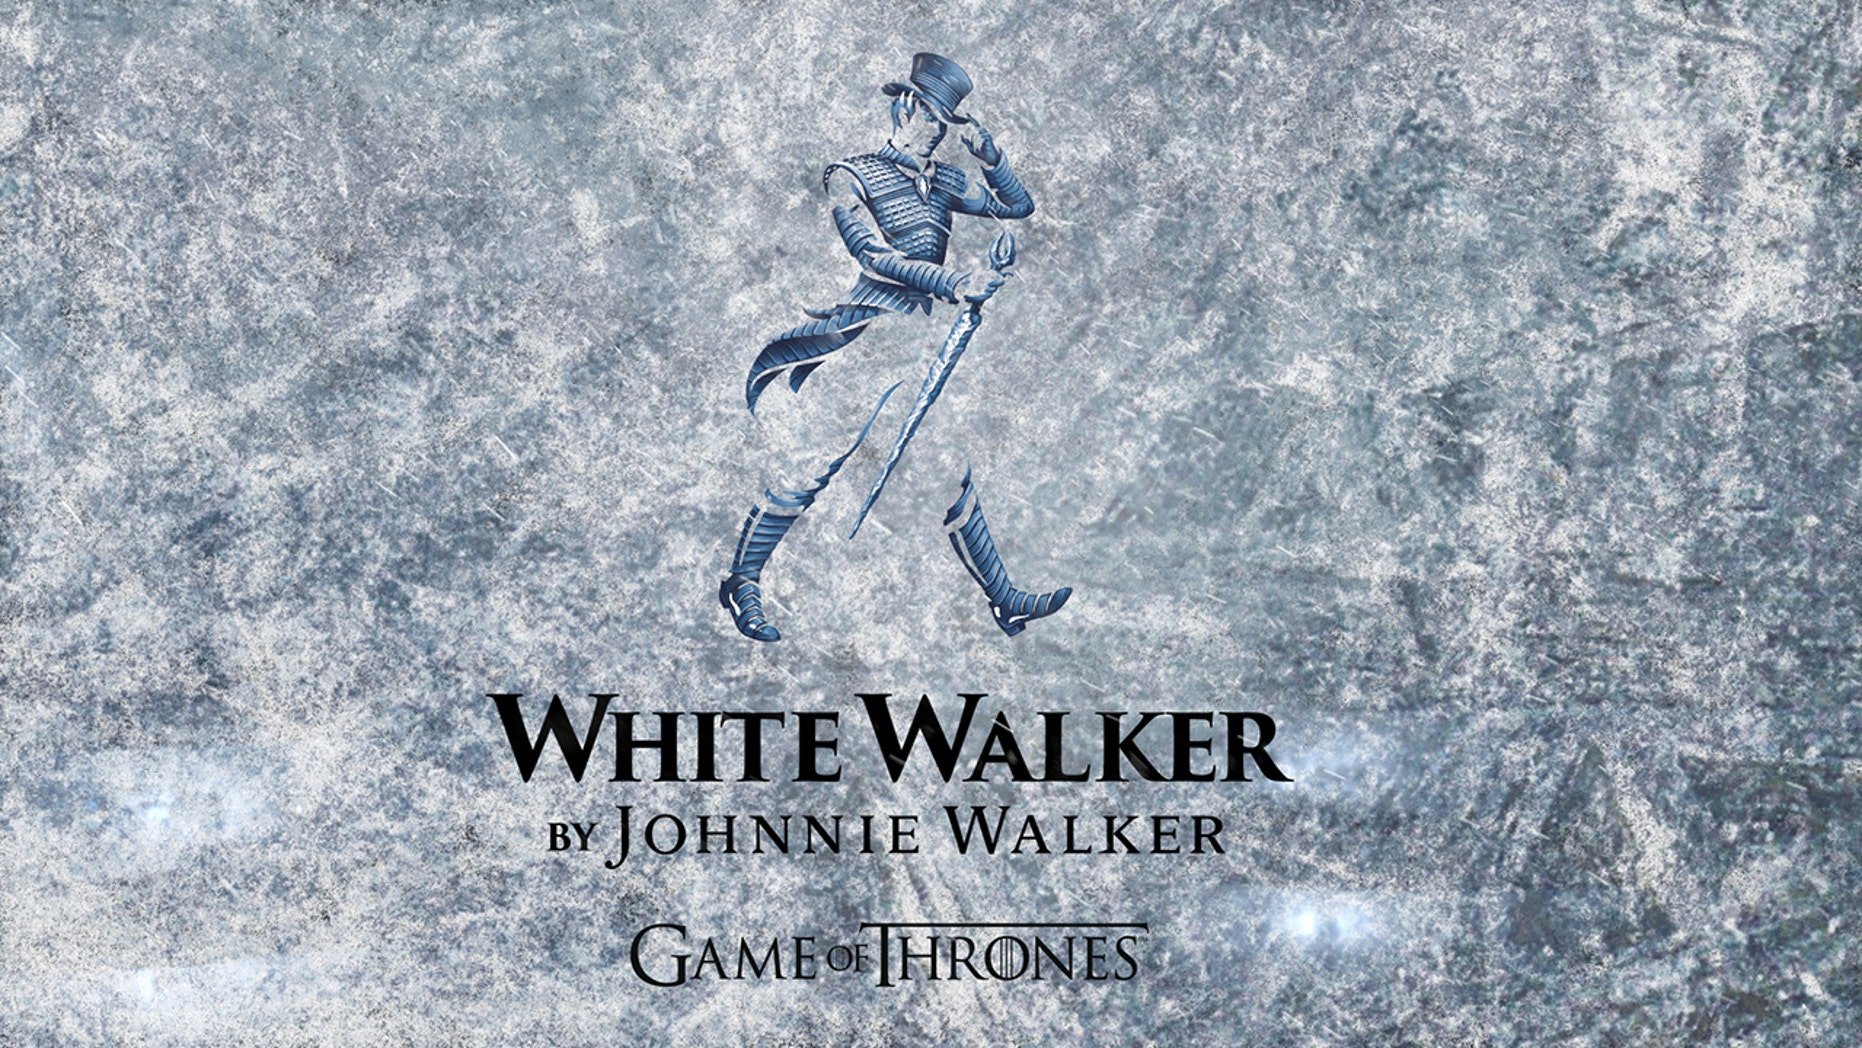 HBO has partnered with Daigeo, which owns Johnnie Walker, to launch the upcoming offering.